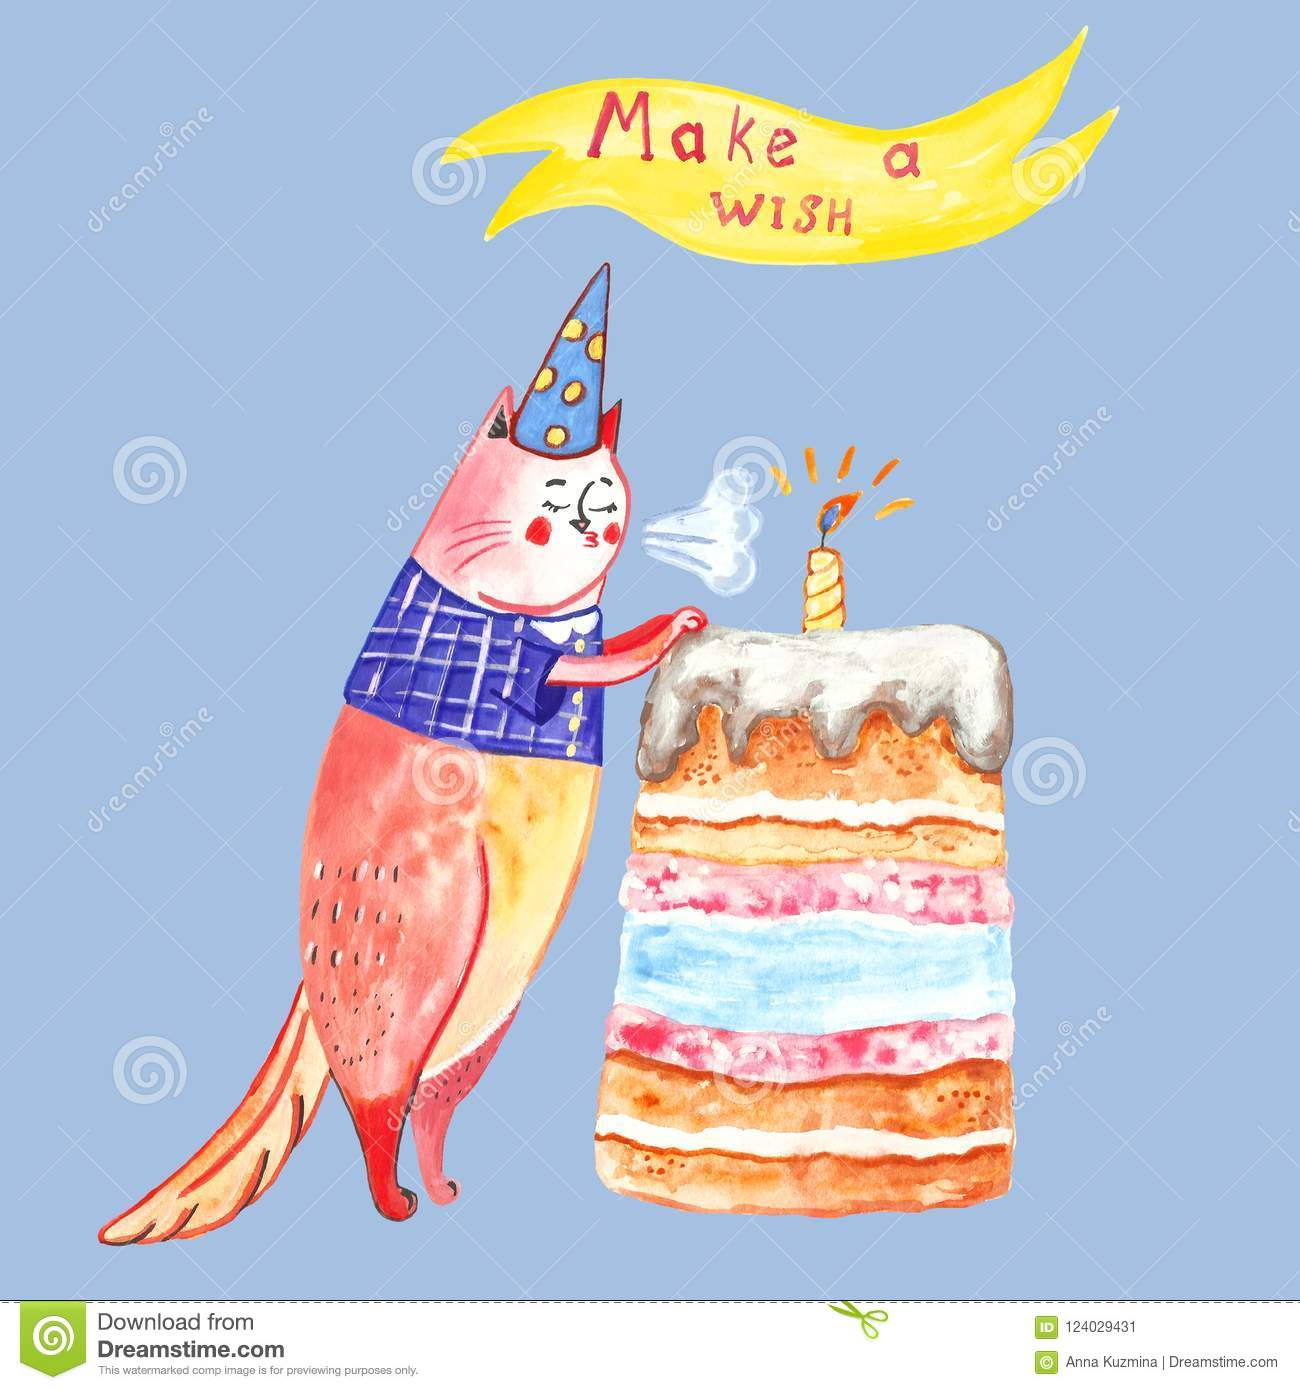 Greeting Card For Birthday In Cartoon Style Adorable Cat And Cake With Candle To Make Wishes